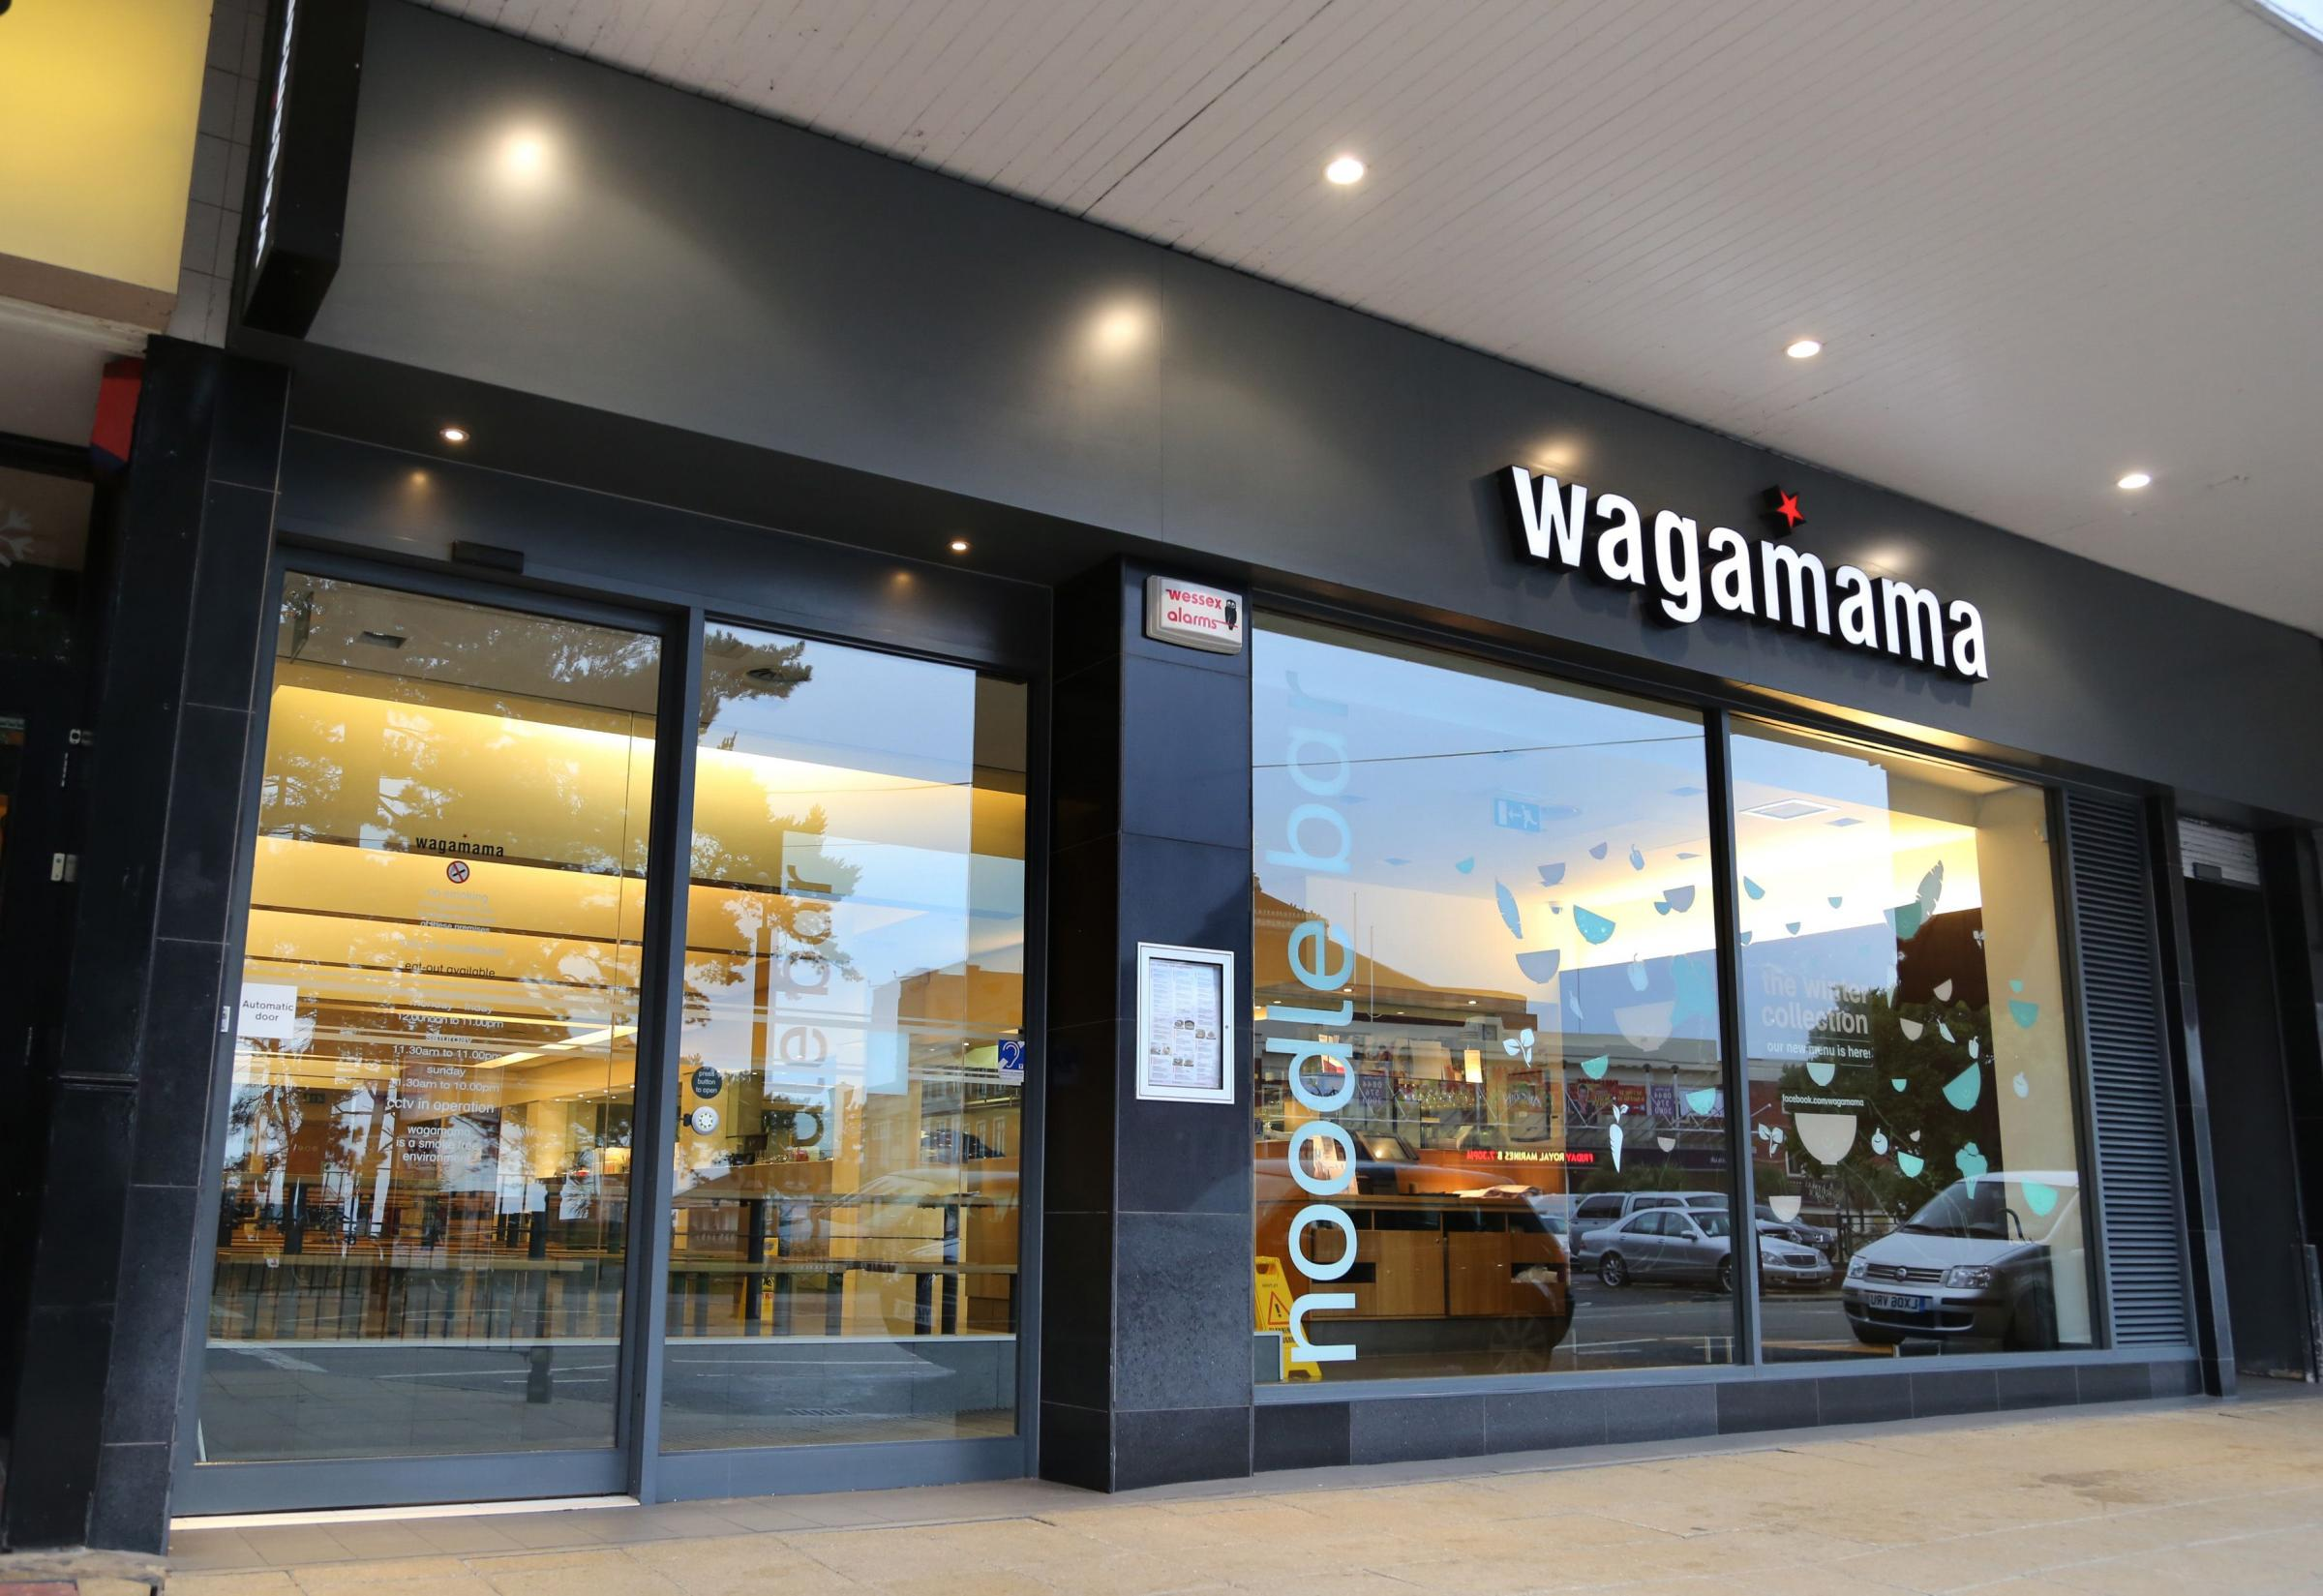 Wagamama are to open a new restaurant in Hampshire